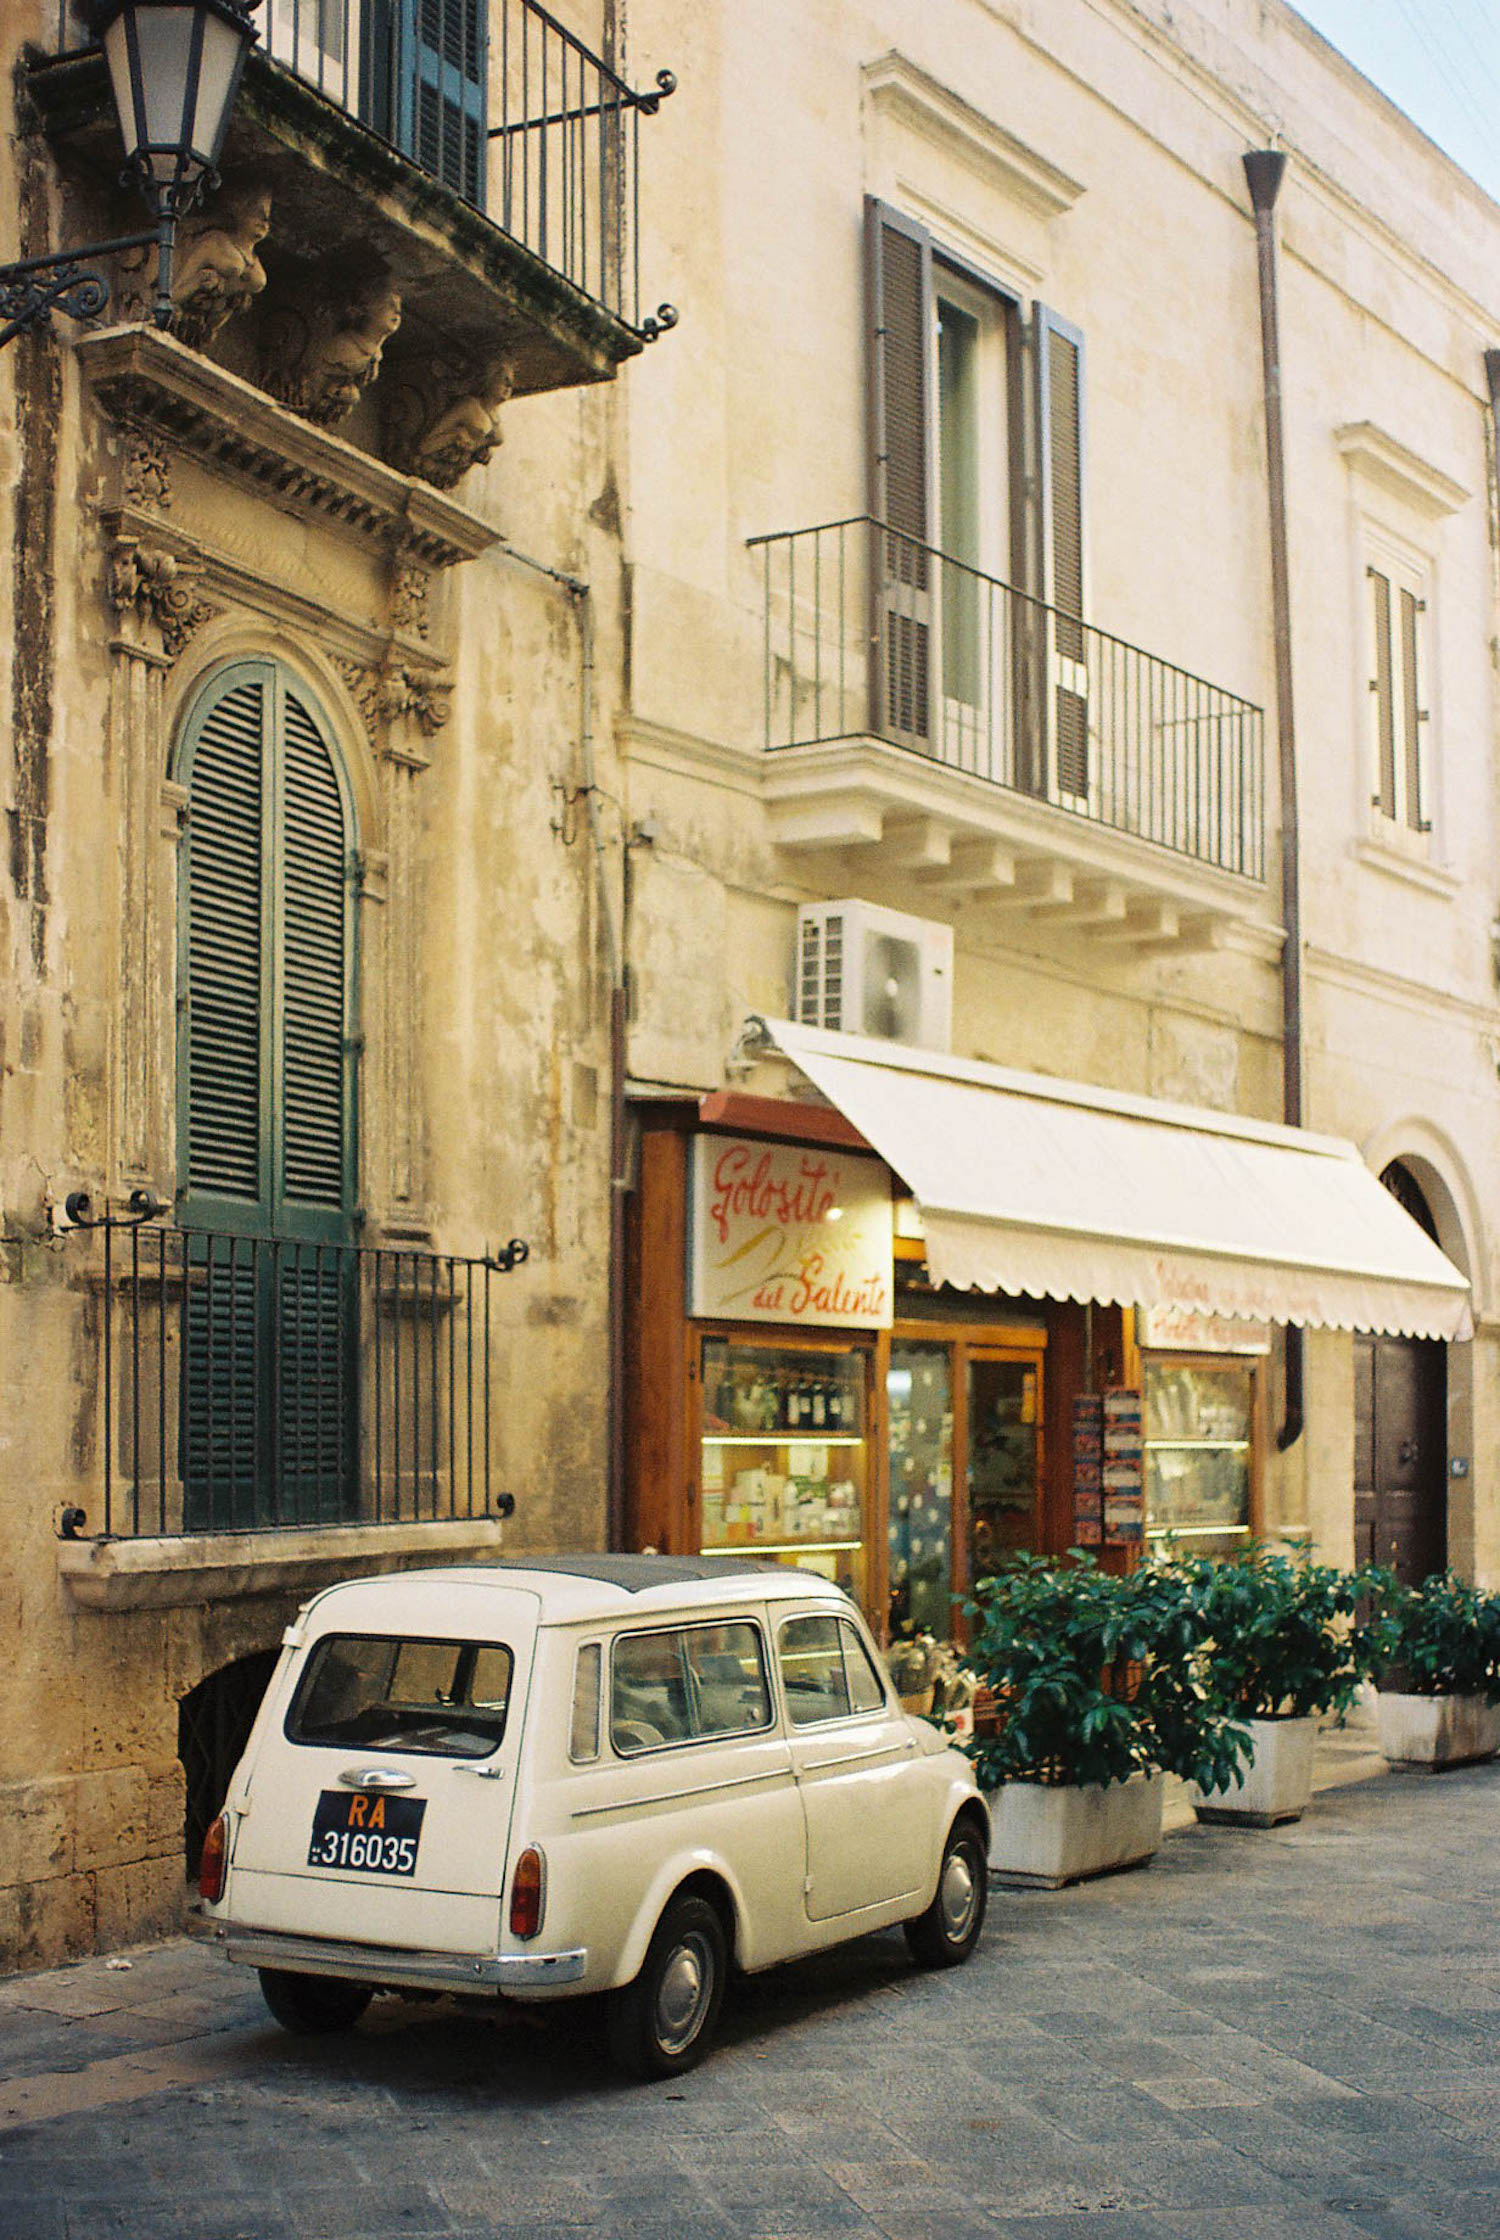 Analogue Travel photograph of vintage Fiat 500, Lecco, Puglia